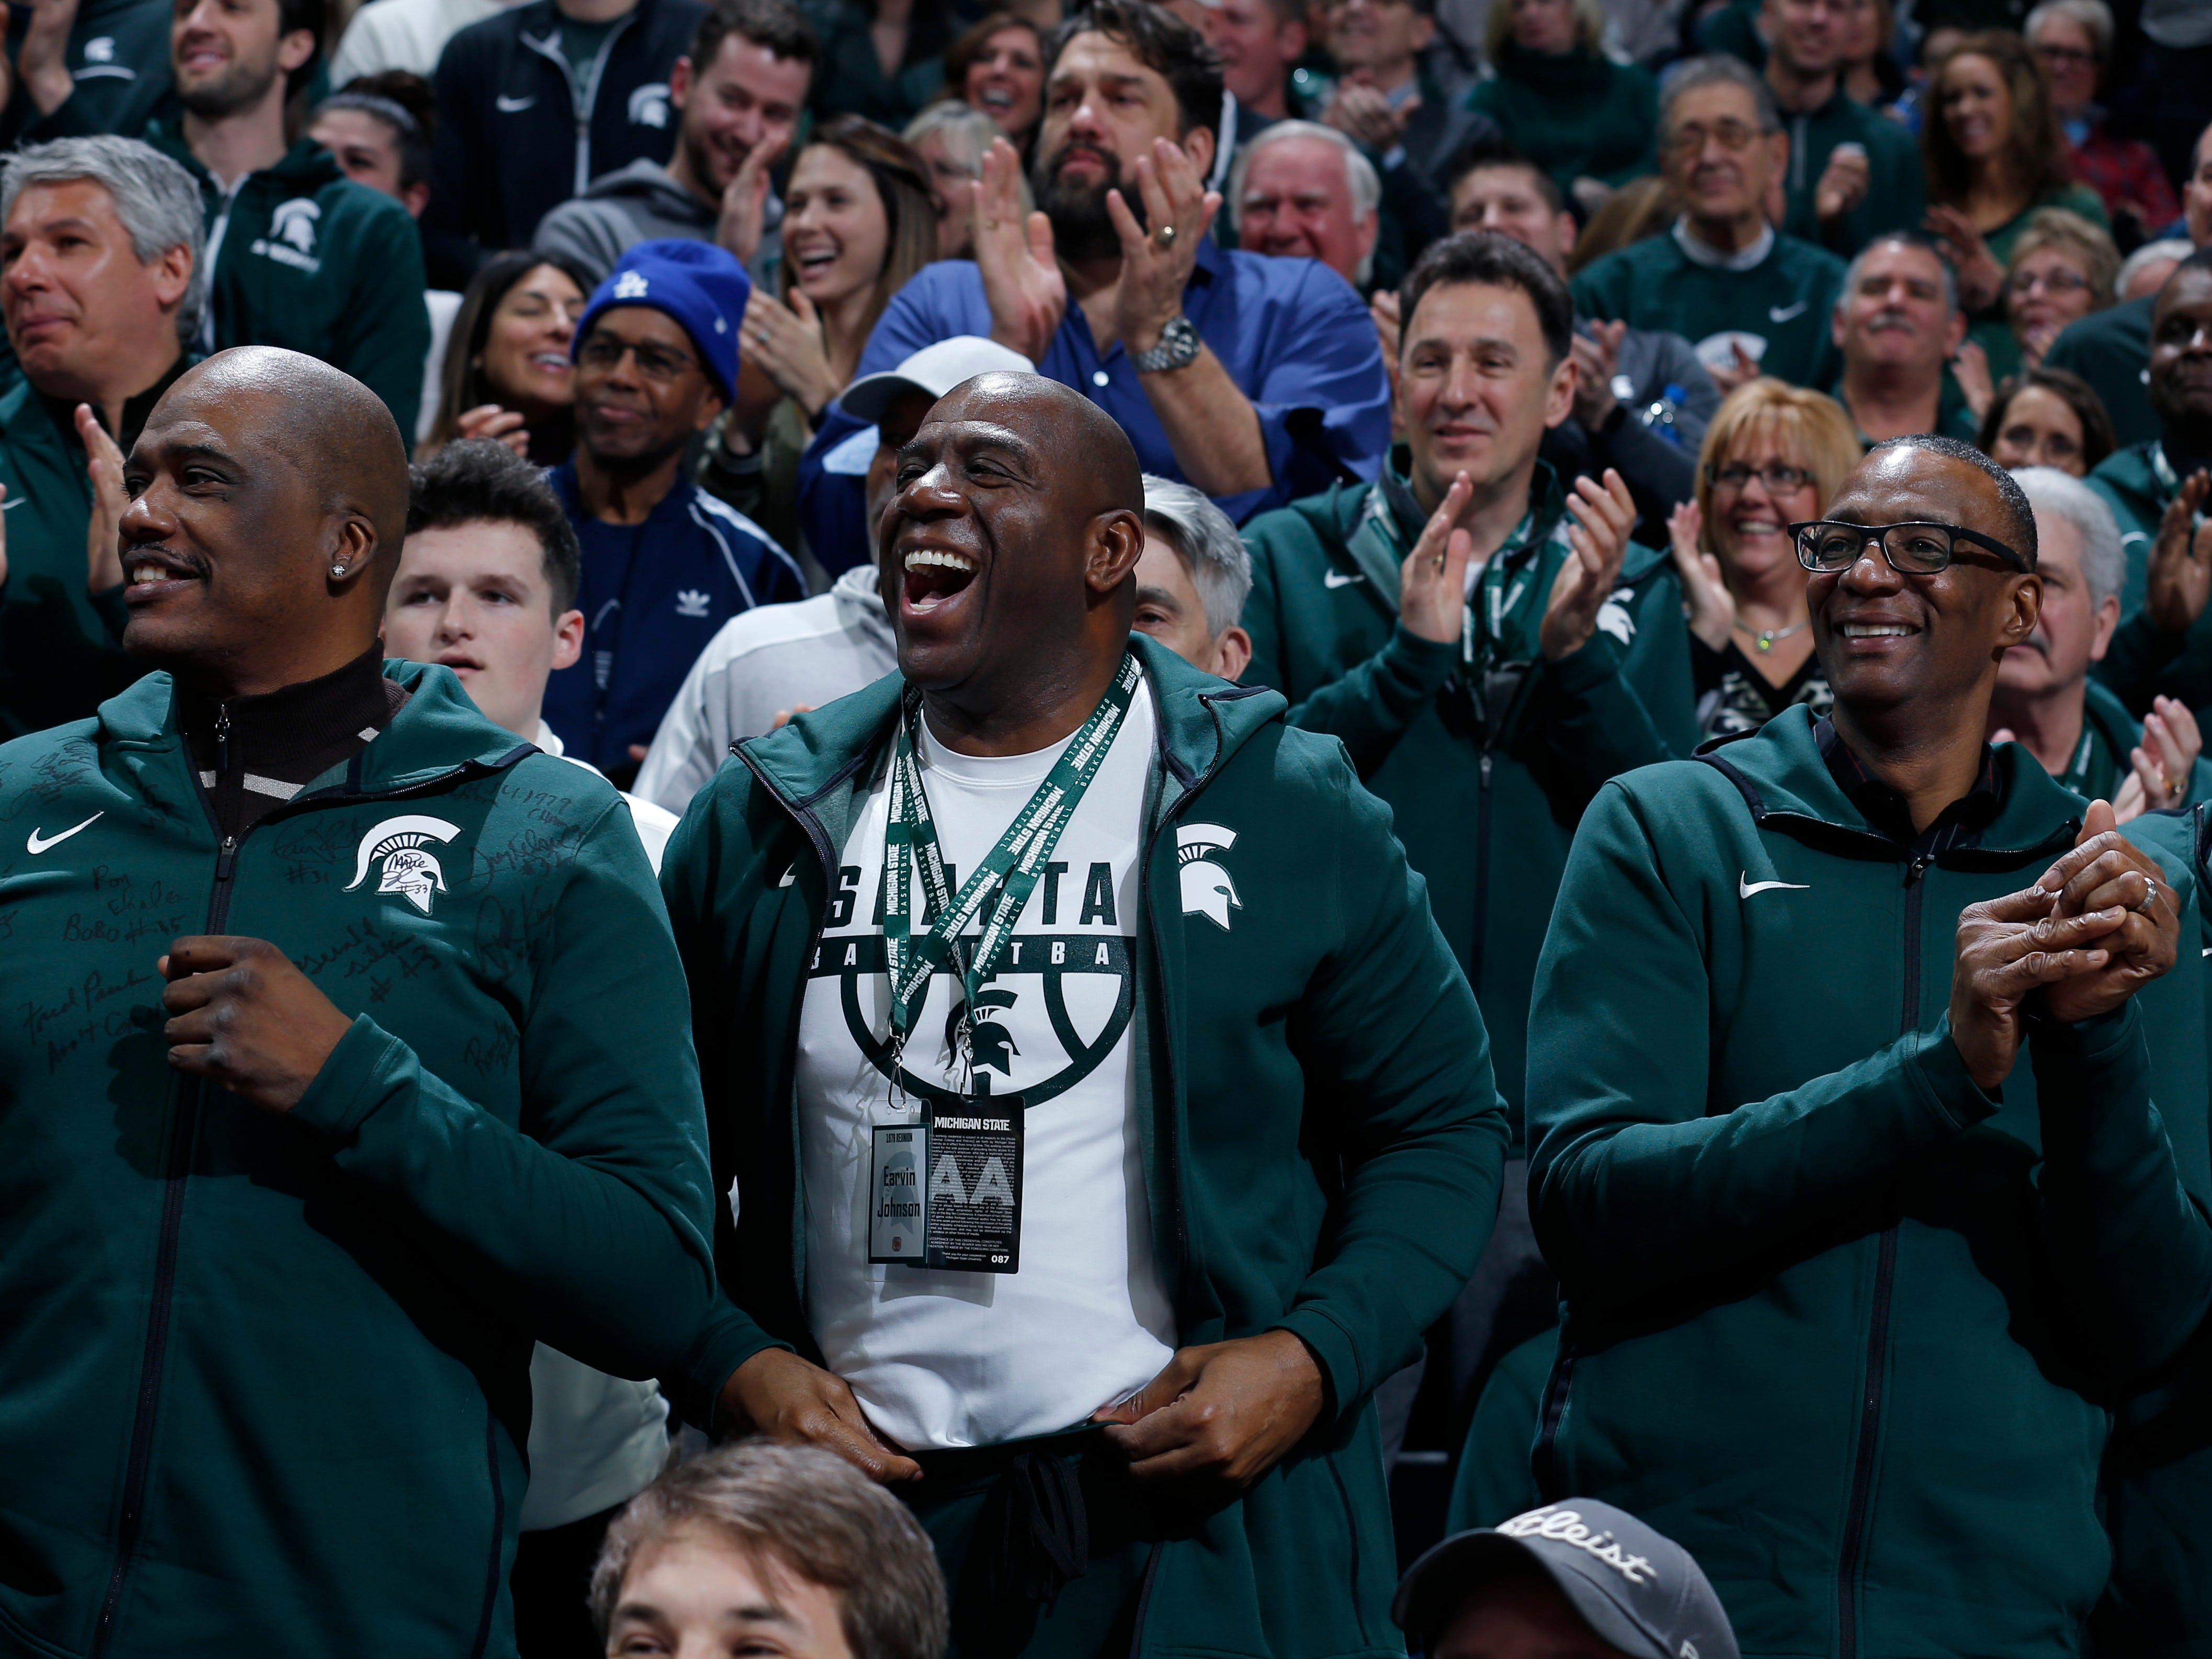 Former players on Michigan State's 1979 national championship team, including Magic Johnson, center, Jay Vincent, left, and Greg Kelser, right, react during the first half.